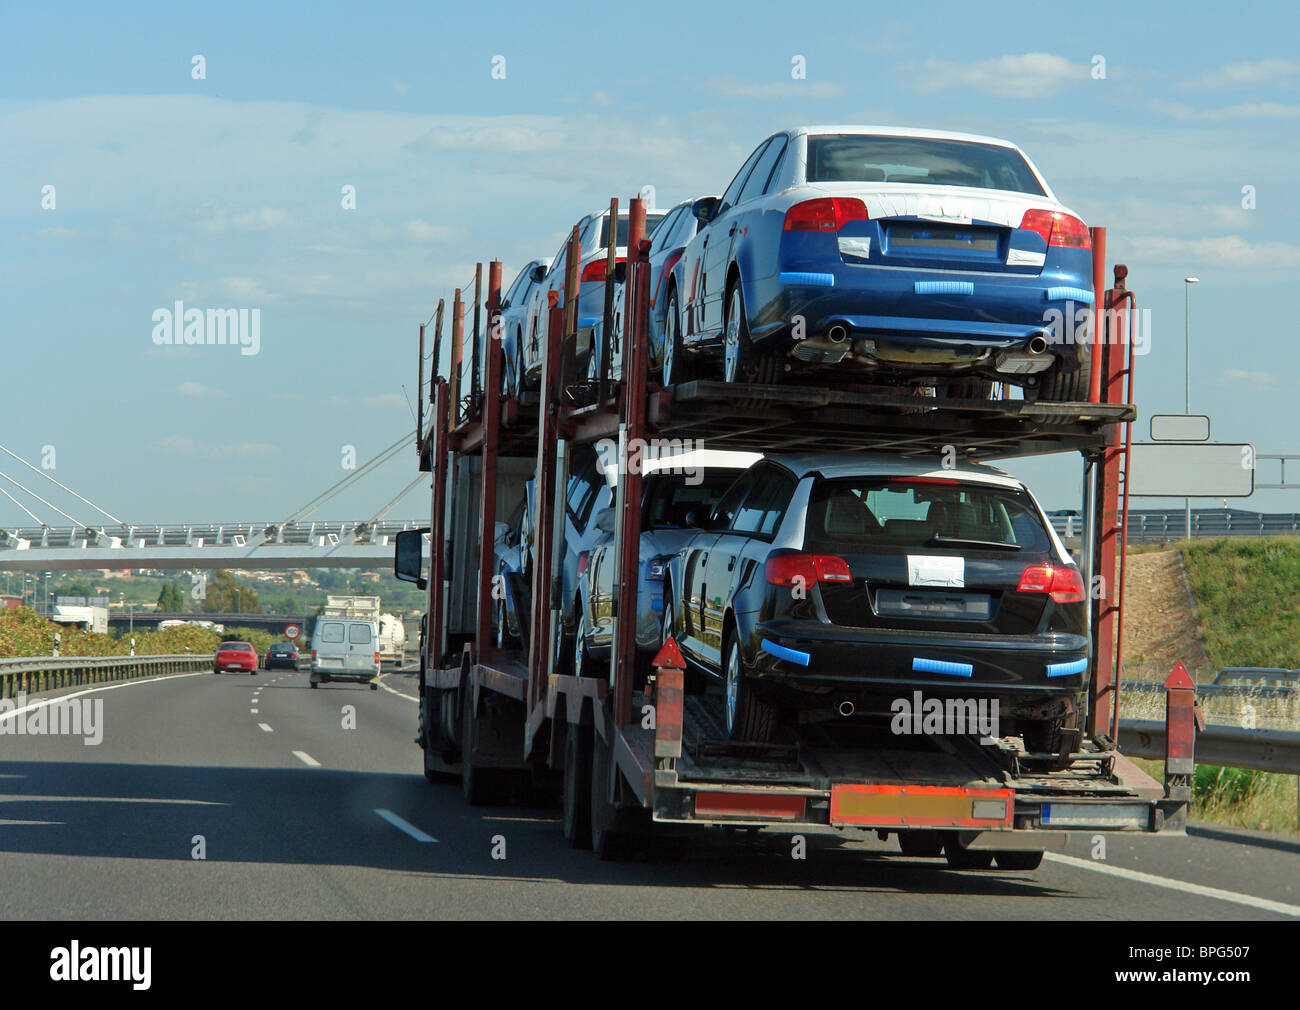 Subaru Dealers In Ct >> Truck with trailer carrying new cars around Stock Photo ...